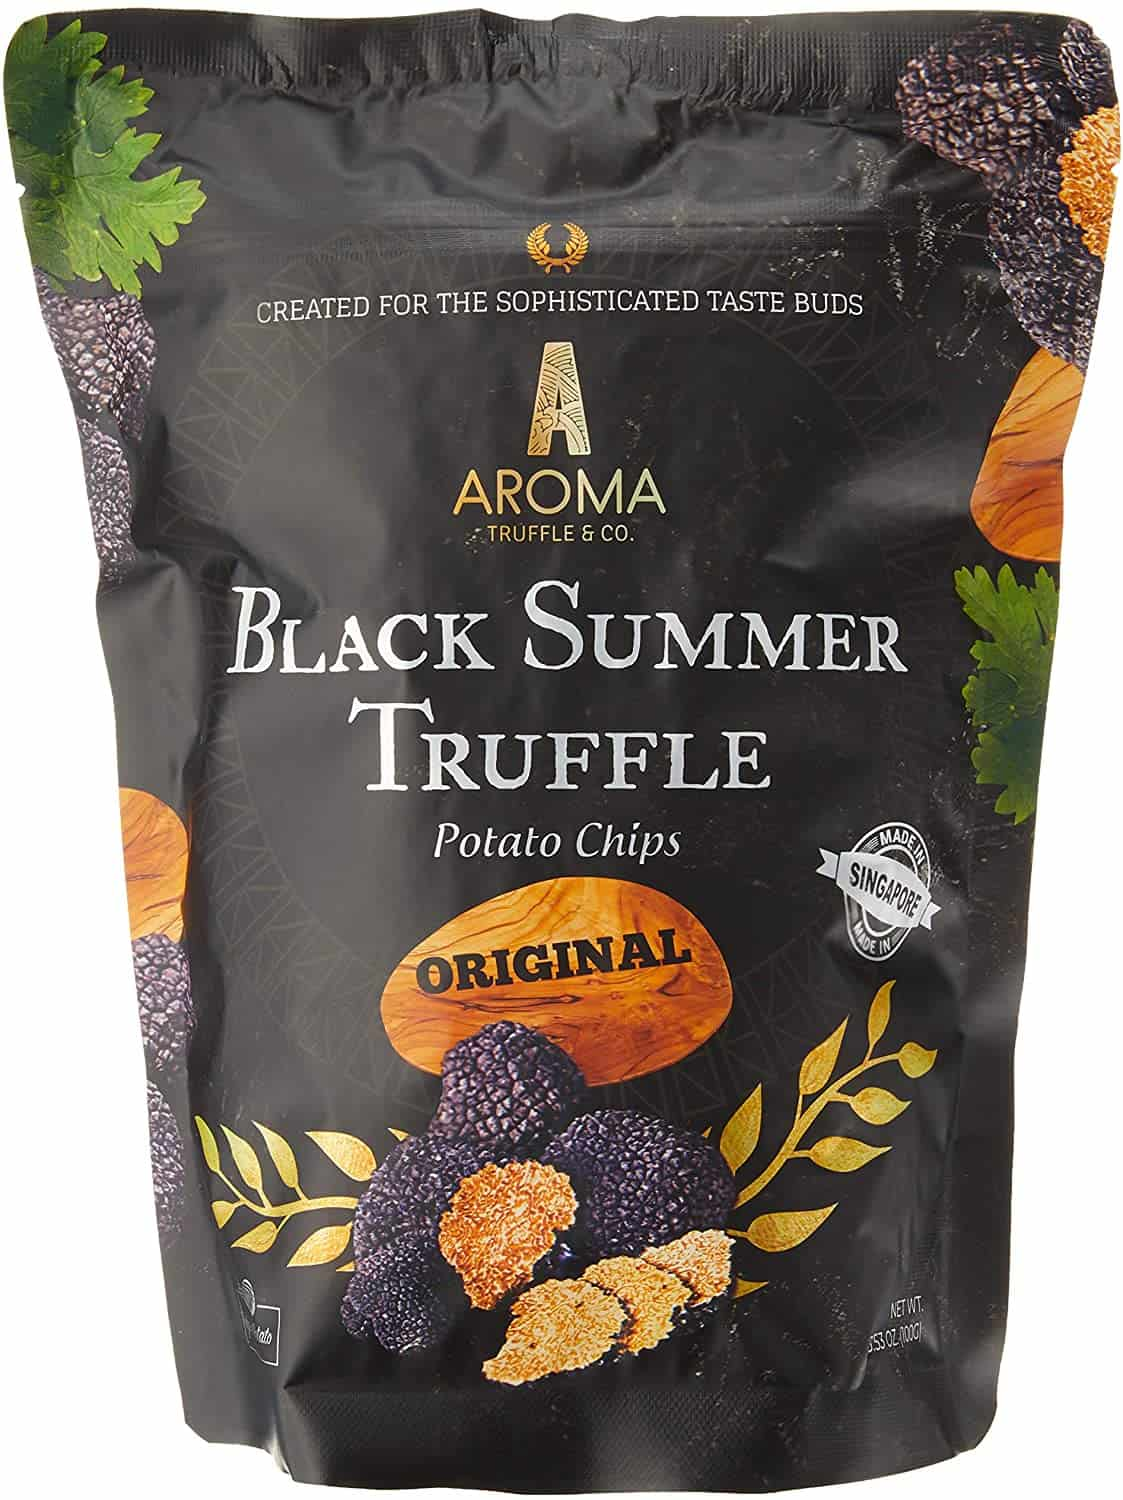 Aroma Chips Black Summer Truffle Chips (Original) is the top 10 snacks in Singapore, finest Black Summer Truffles harvested from the Italian suburbs, sprinkle real black truffles to made the crisps as flavorful and tasty as possible